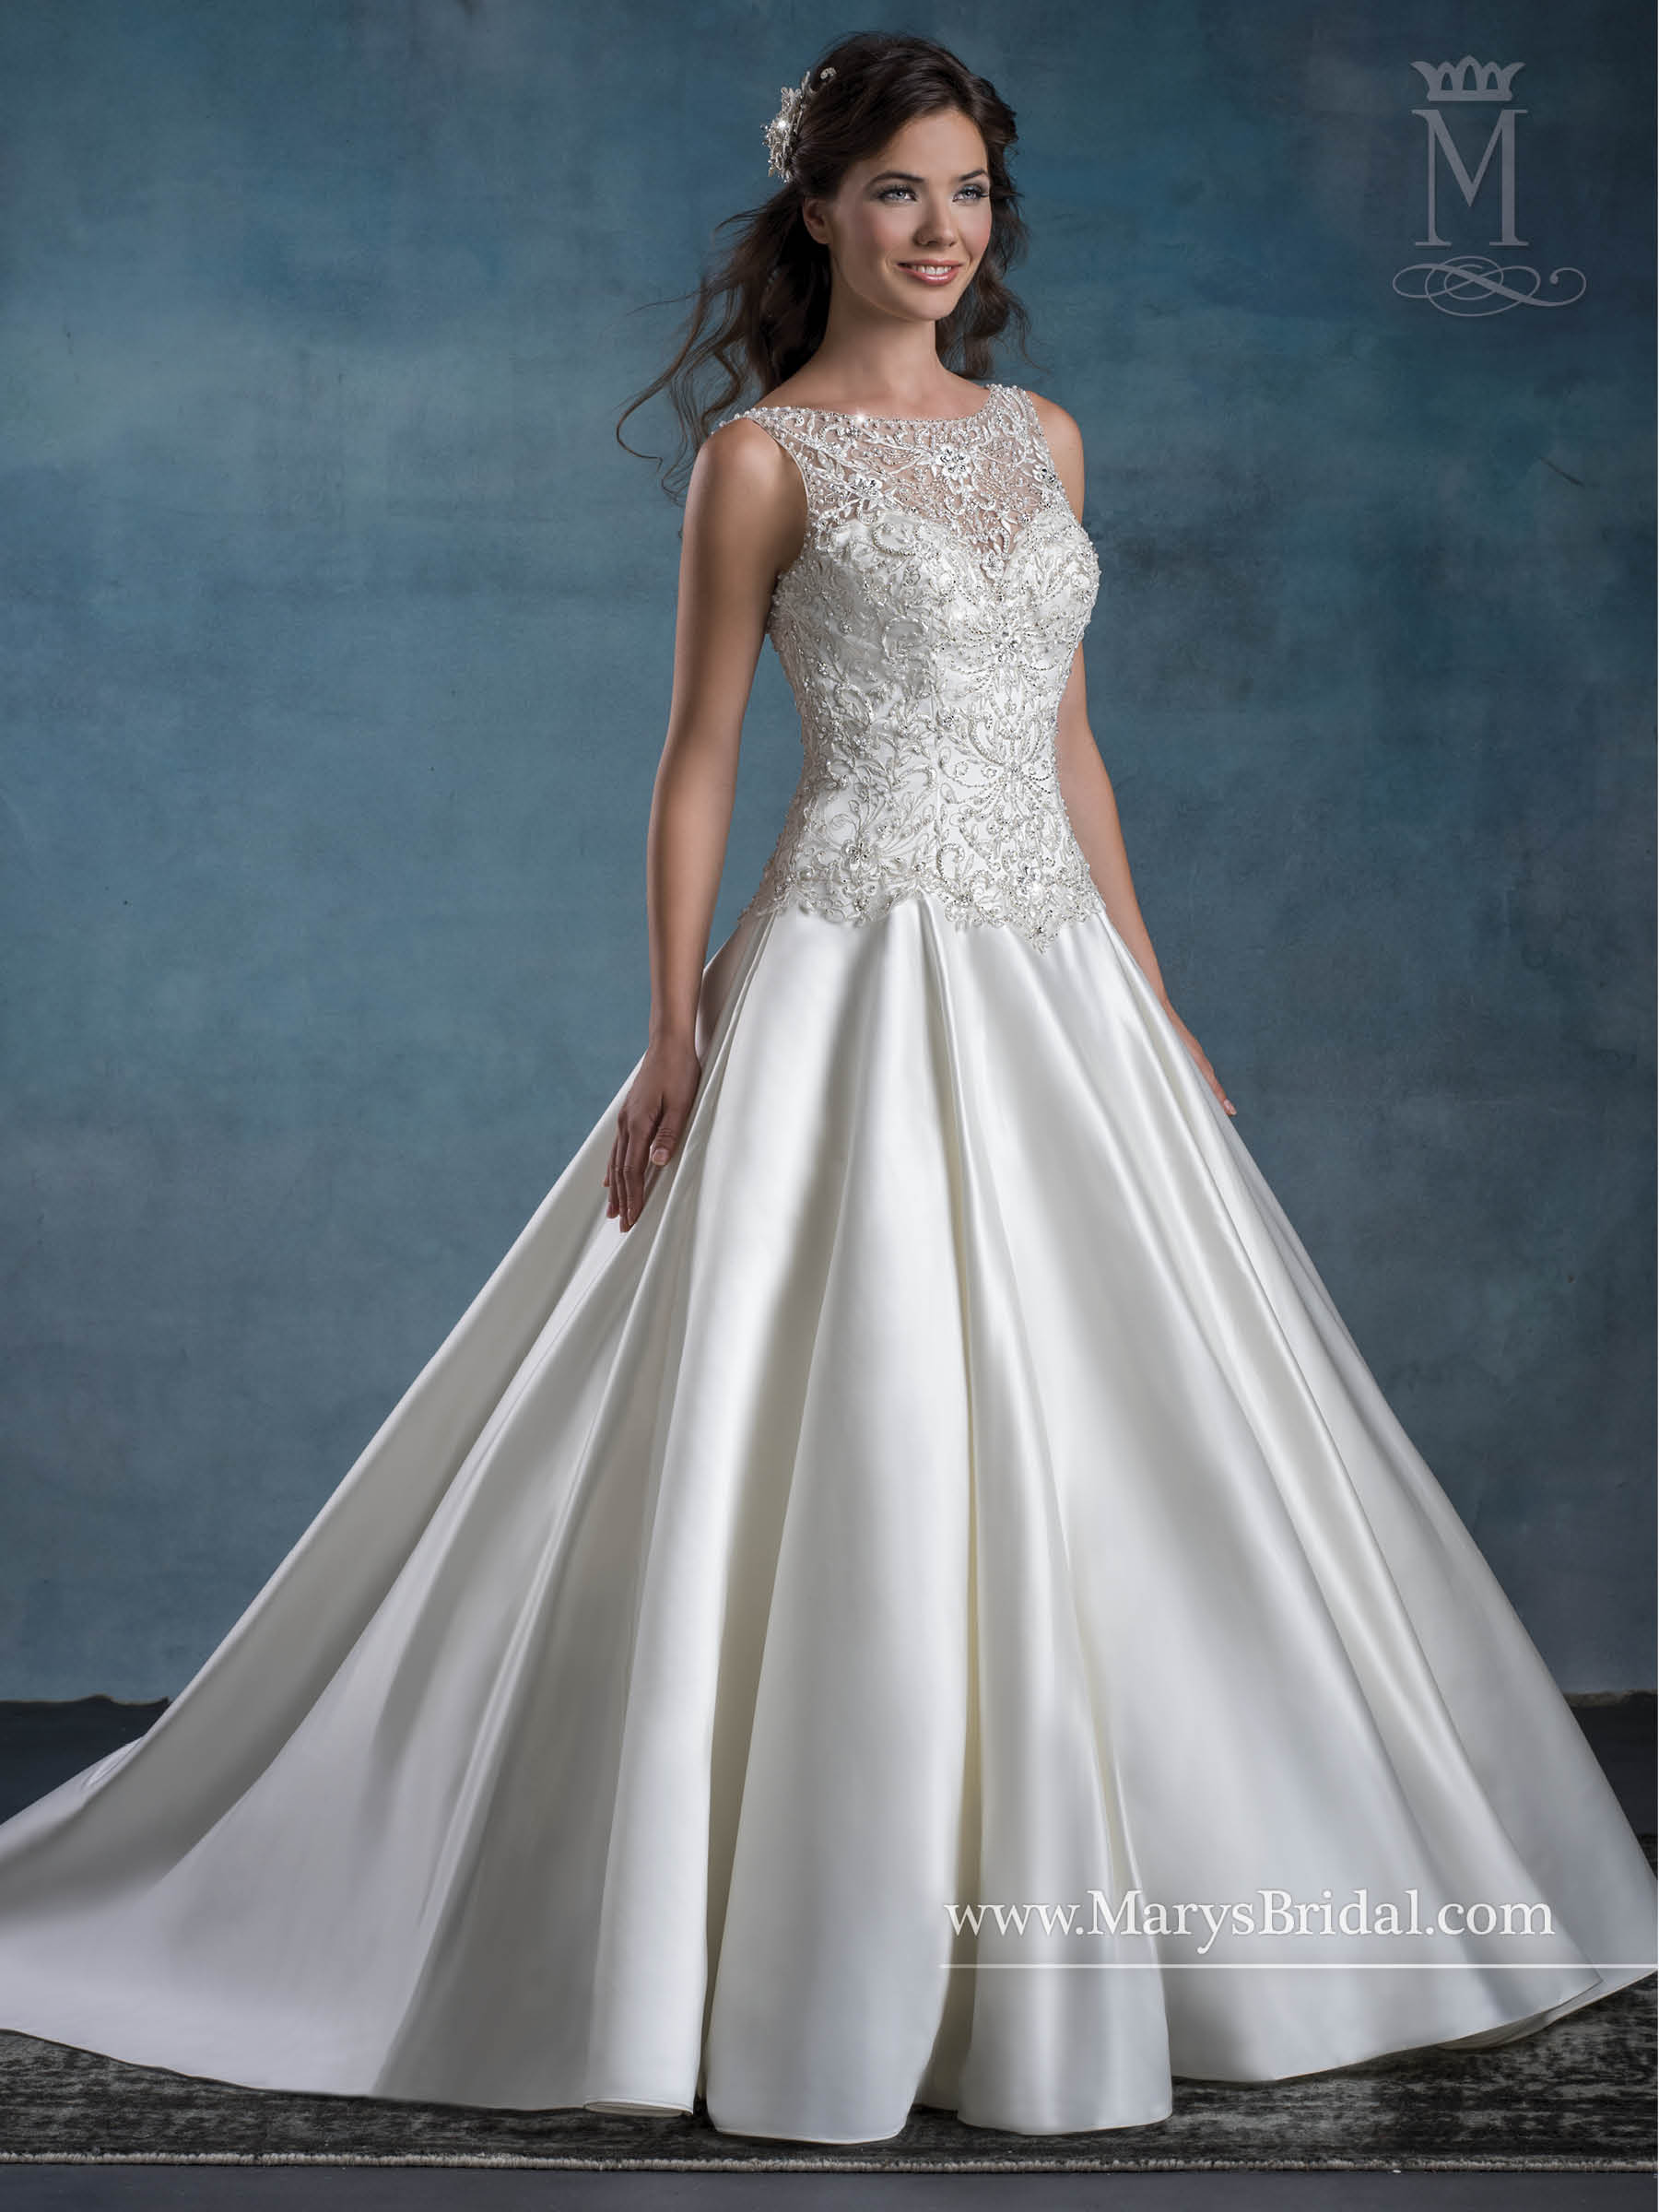 Dorable Previously Owned Wedding Gowns Mold - Wedding Dress Ideas ...